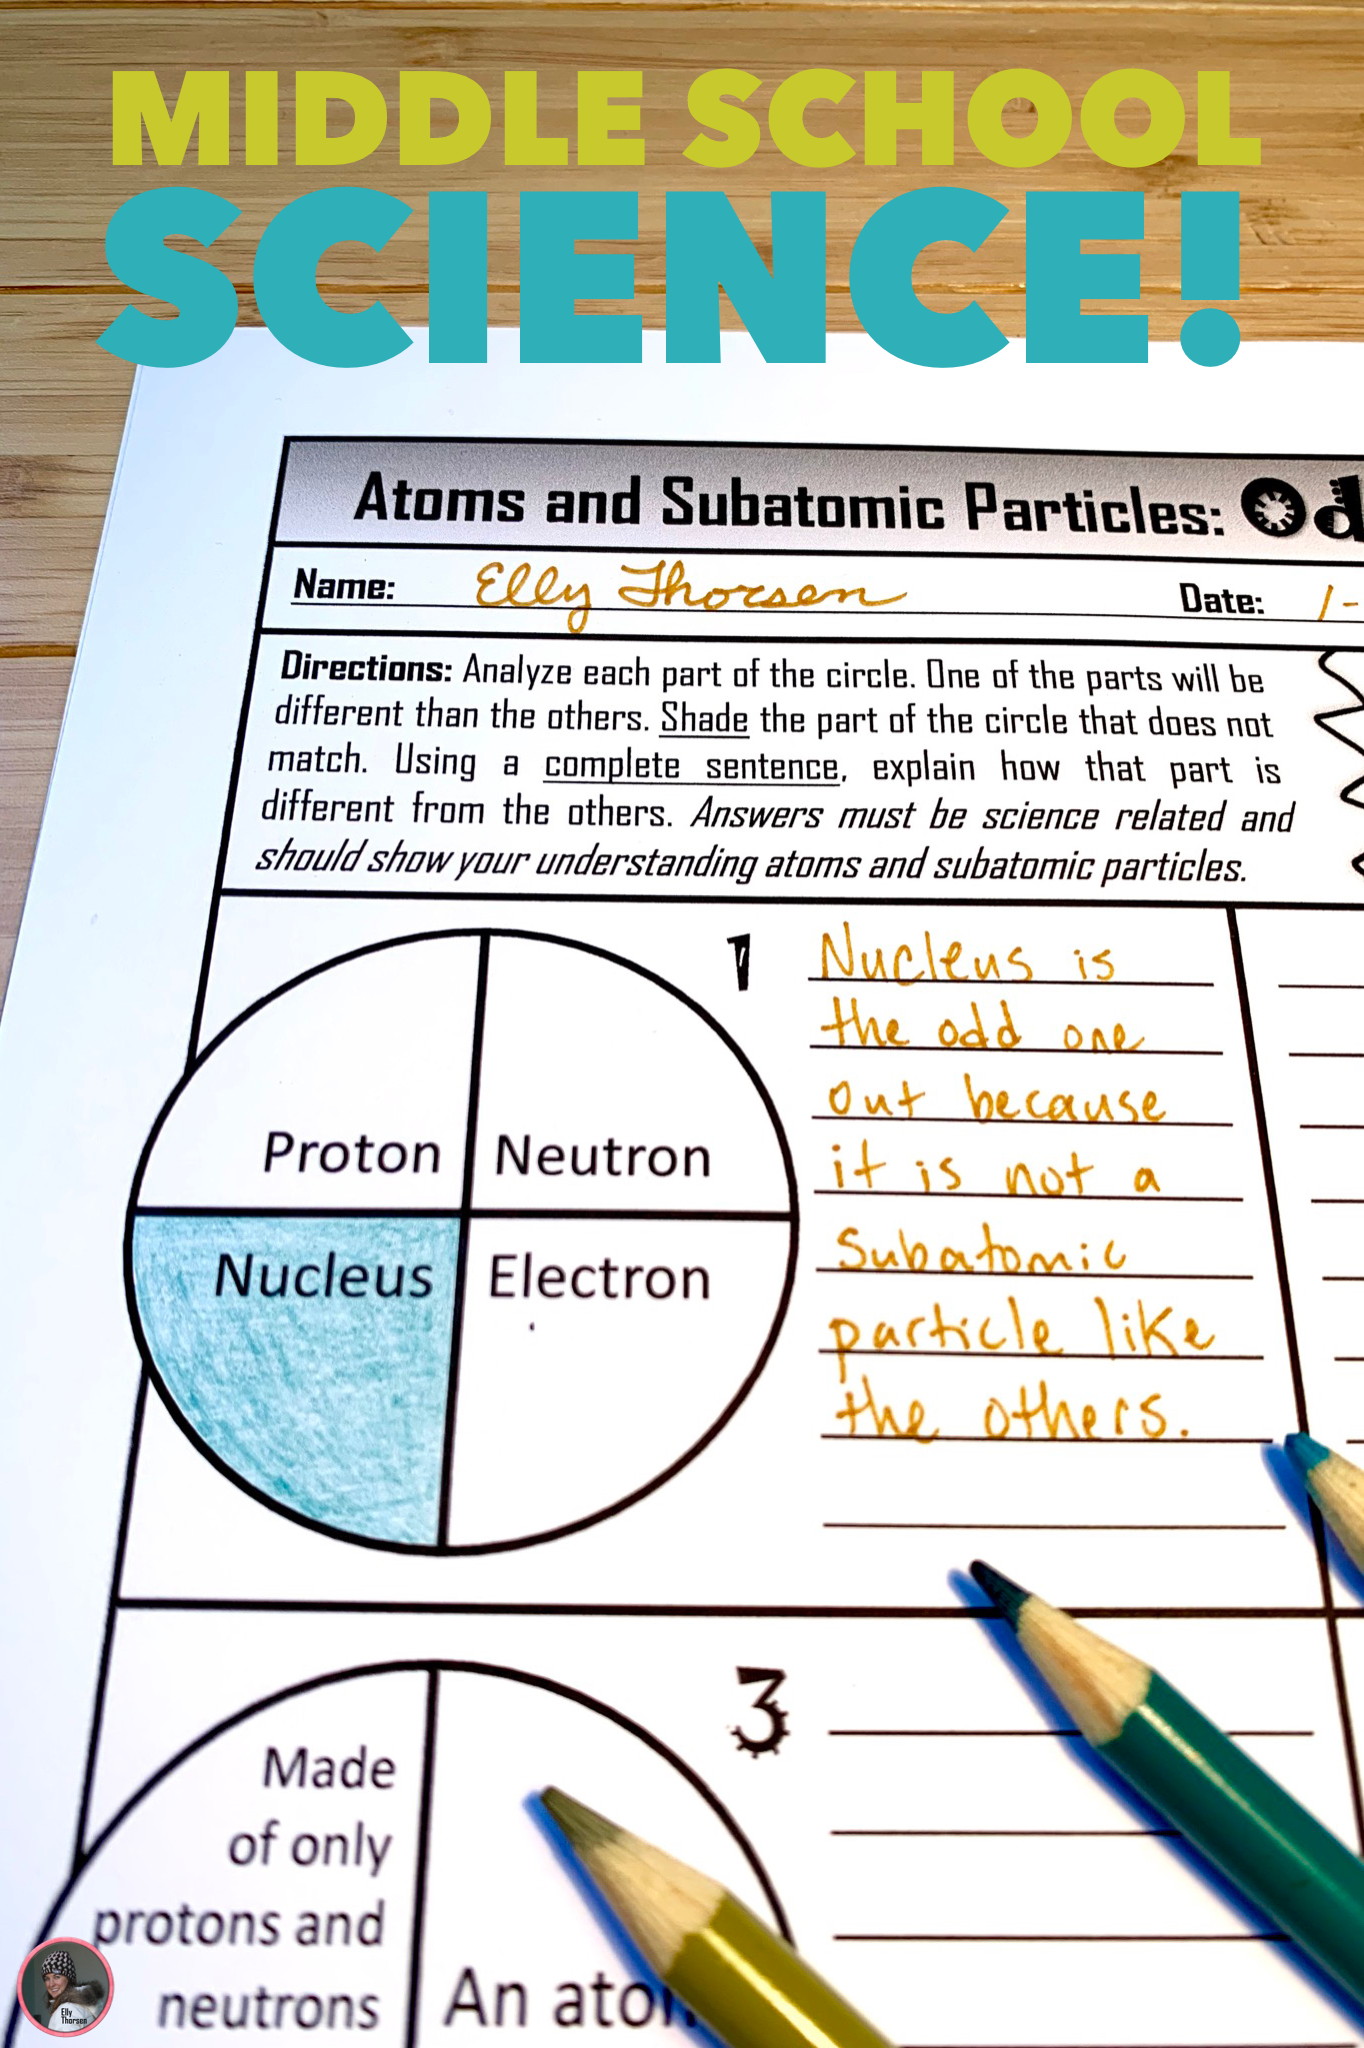 Atoms and Subatomic Particles Critical Thinking Worksheet for Middle School  Physical Science in 2020   Physical science middle school [ 2048 x 1364 Pixel ]